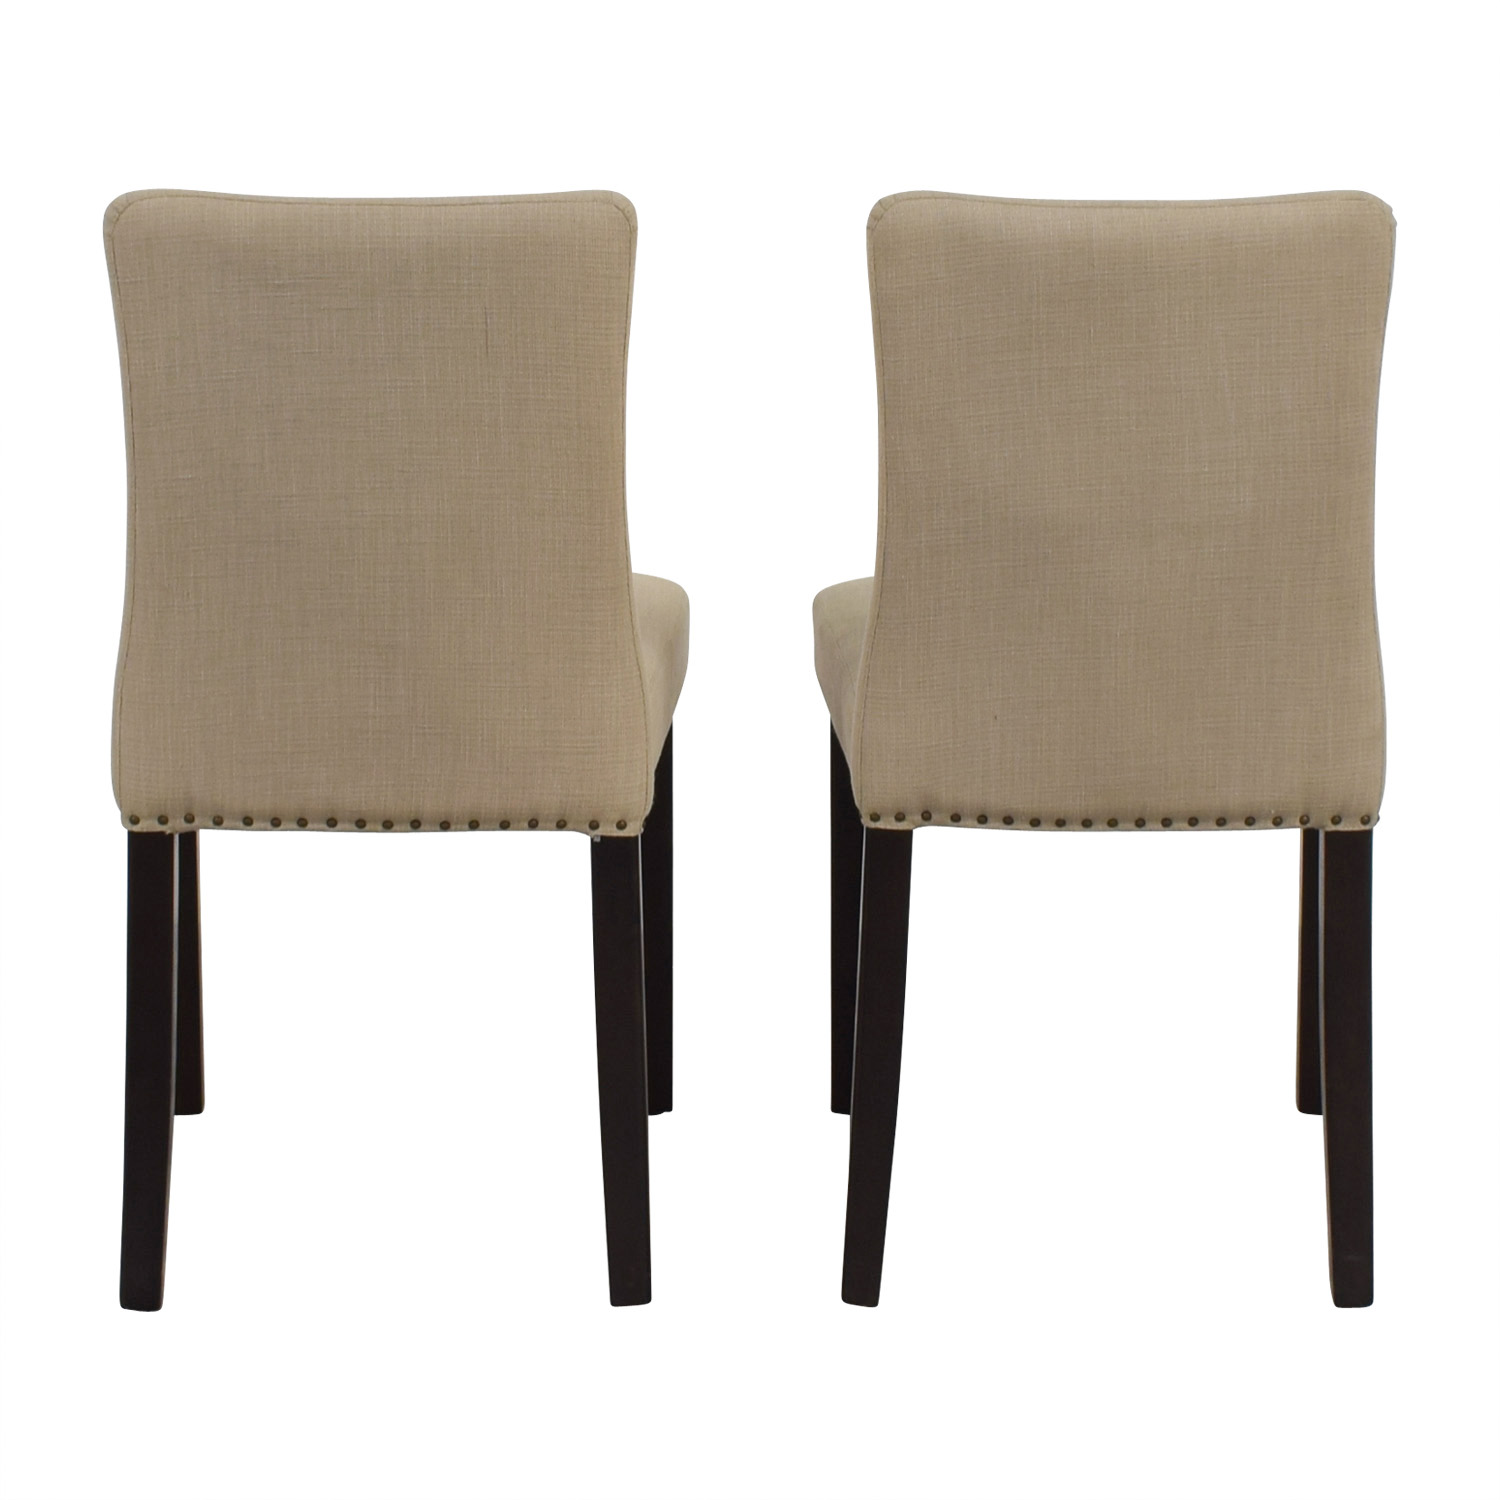 West Elm West Elm Tan Fabric Nailhead Side Chairs used